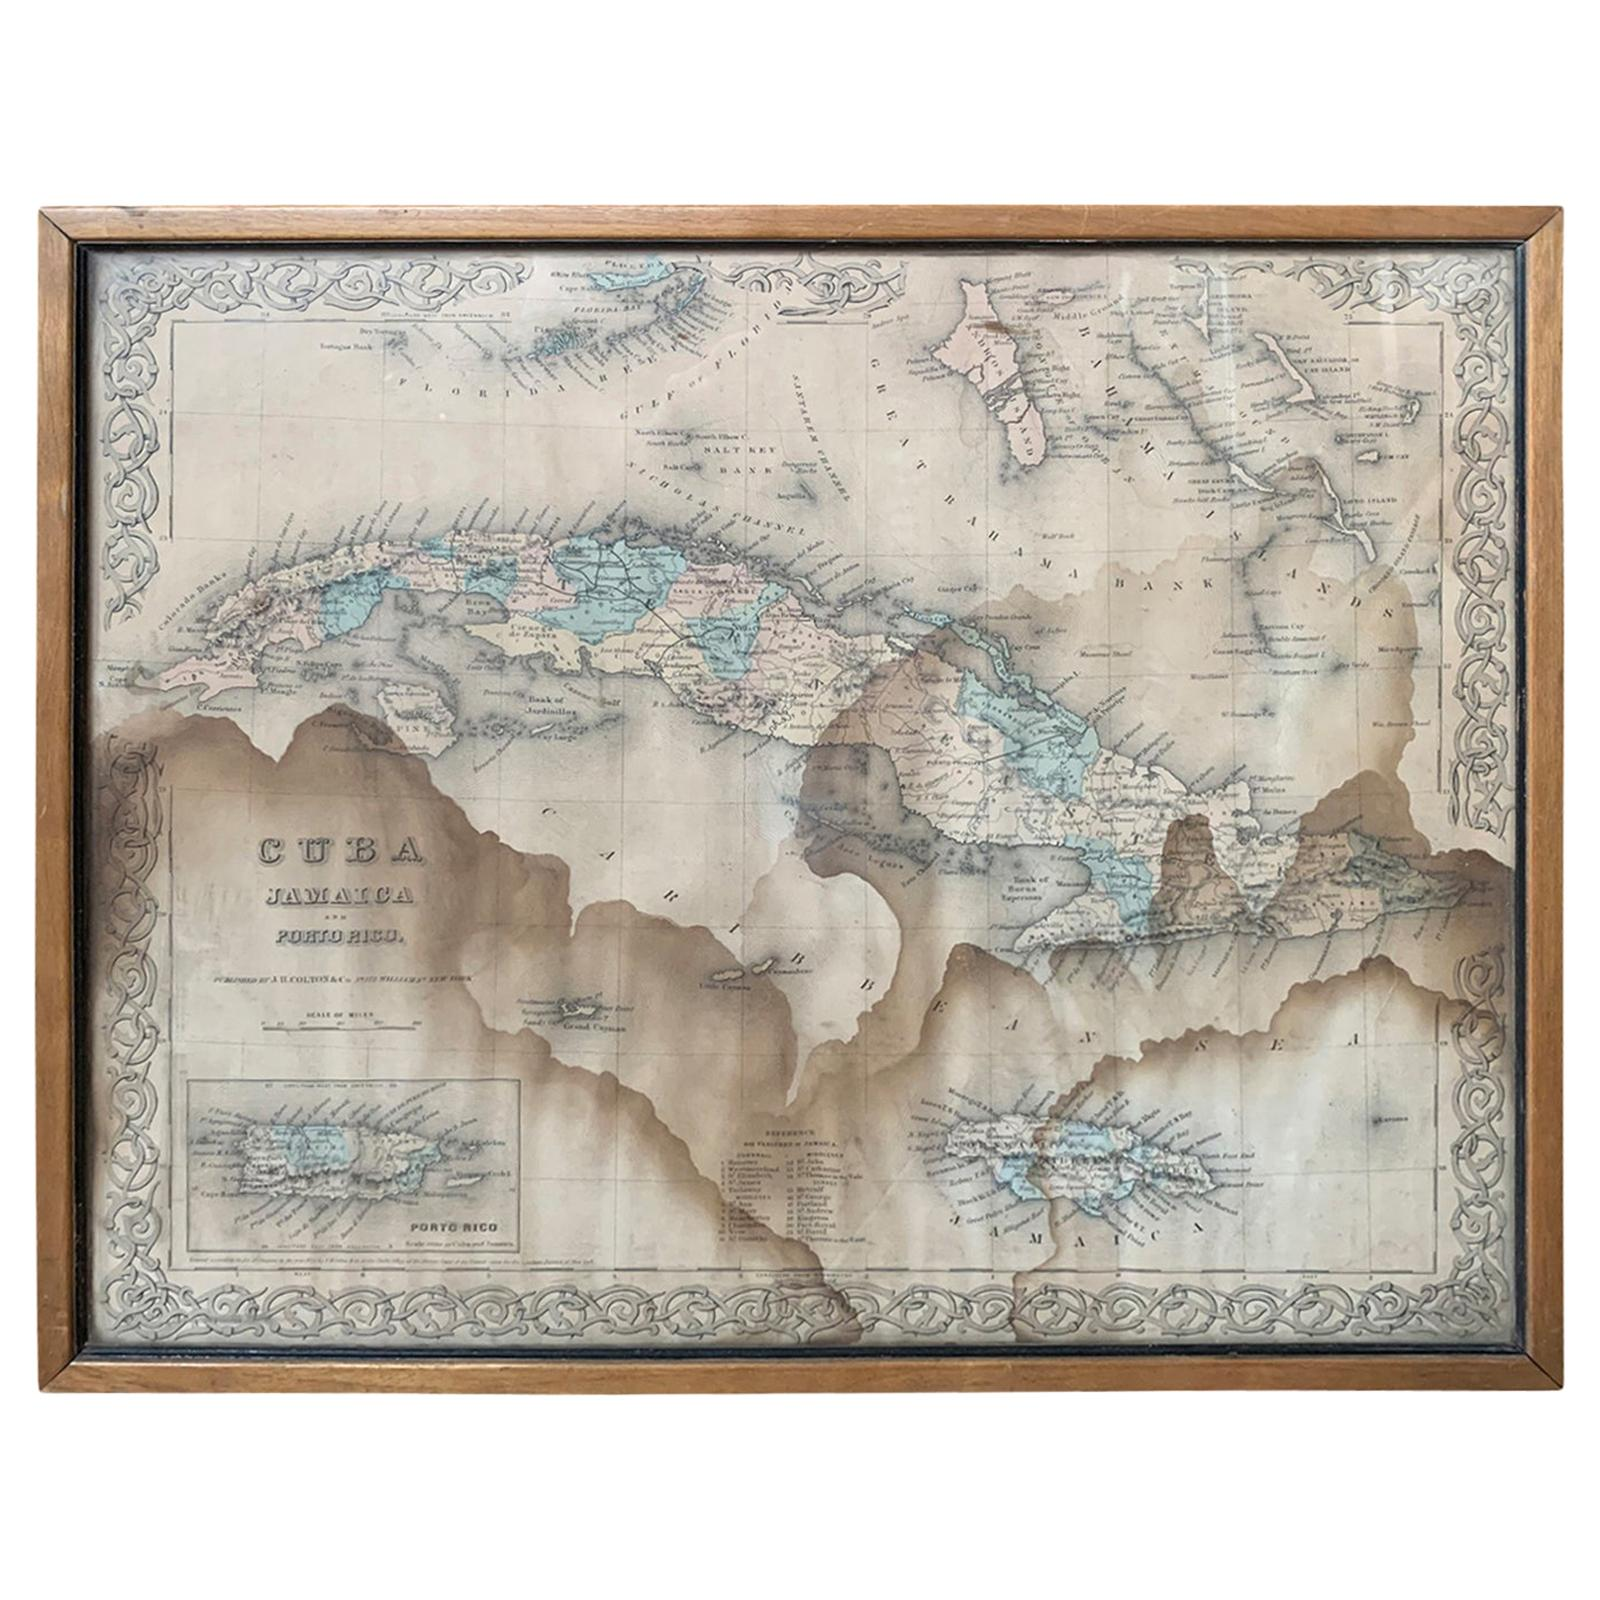 J.H. Colton & Co. Hand Colored Engraved Map of Cuba, Jamaica, & Puerto Rico